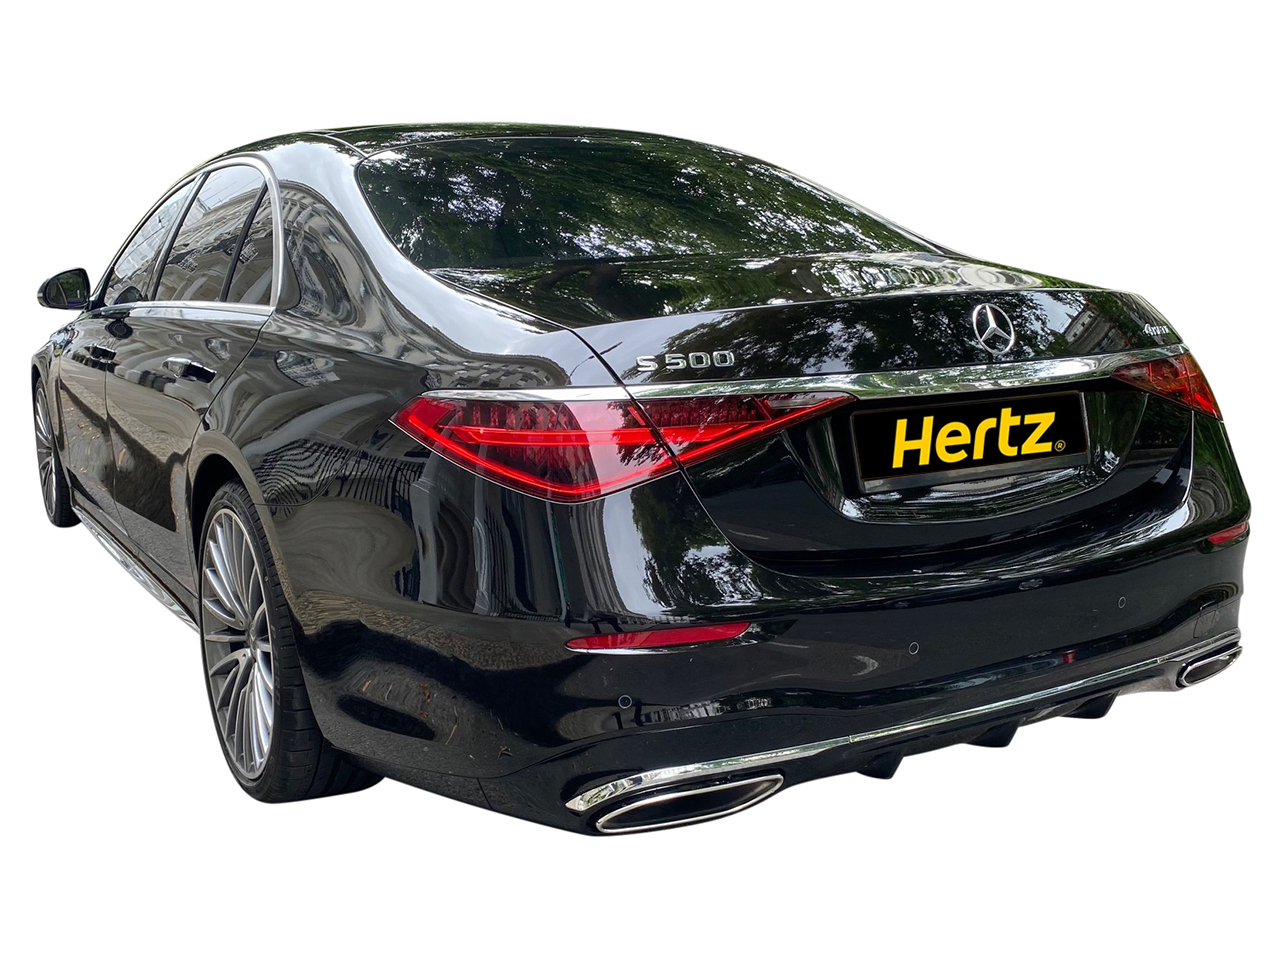 Mercedes S500 4 Matic LWB Car for hire